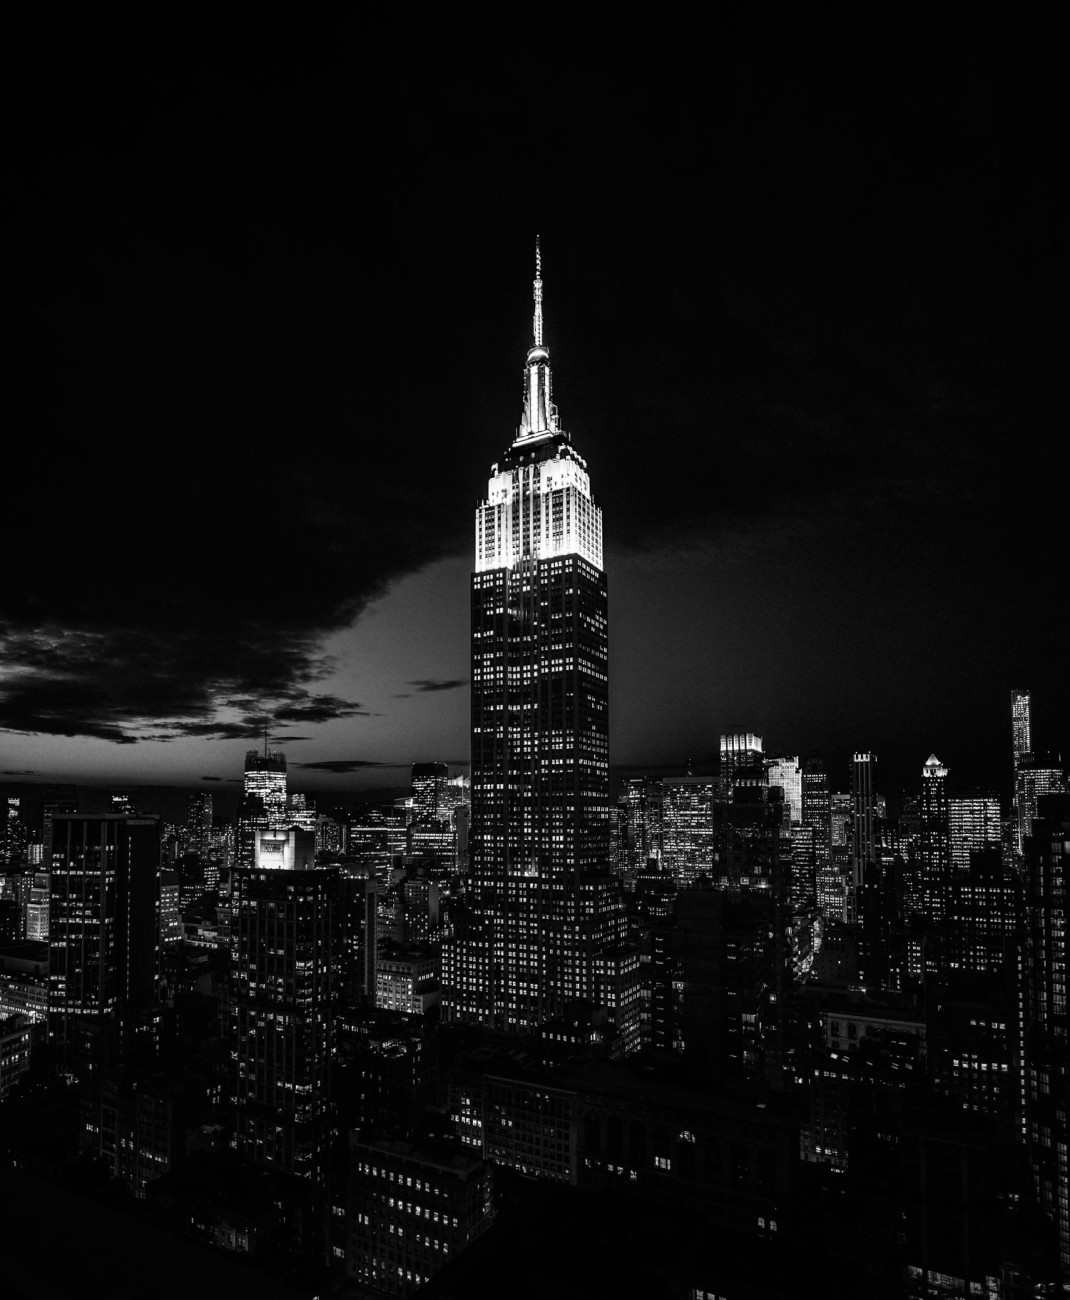 Empire State Building at night with city lights, NY, 2015